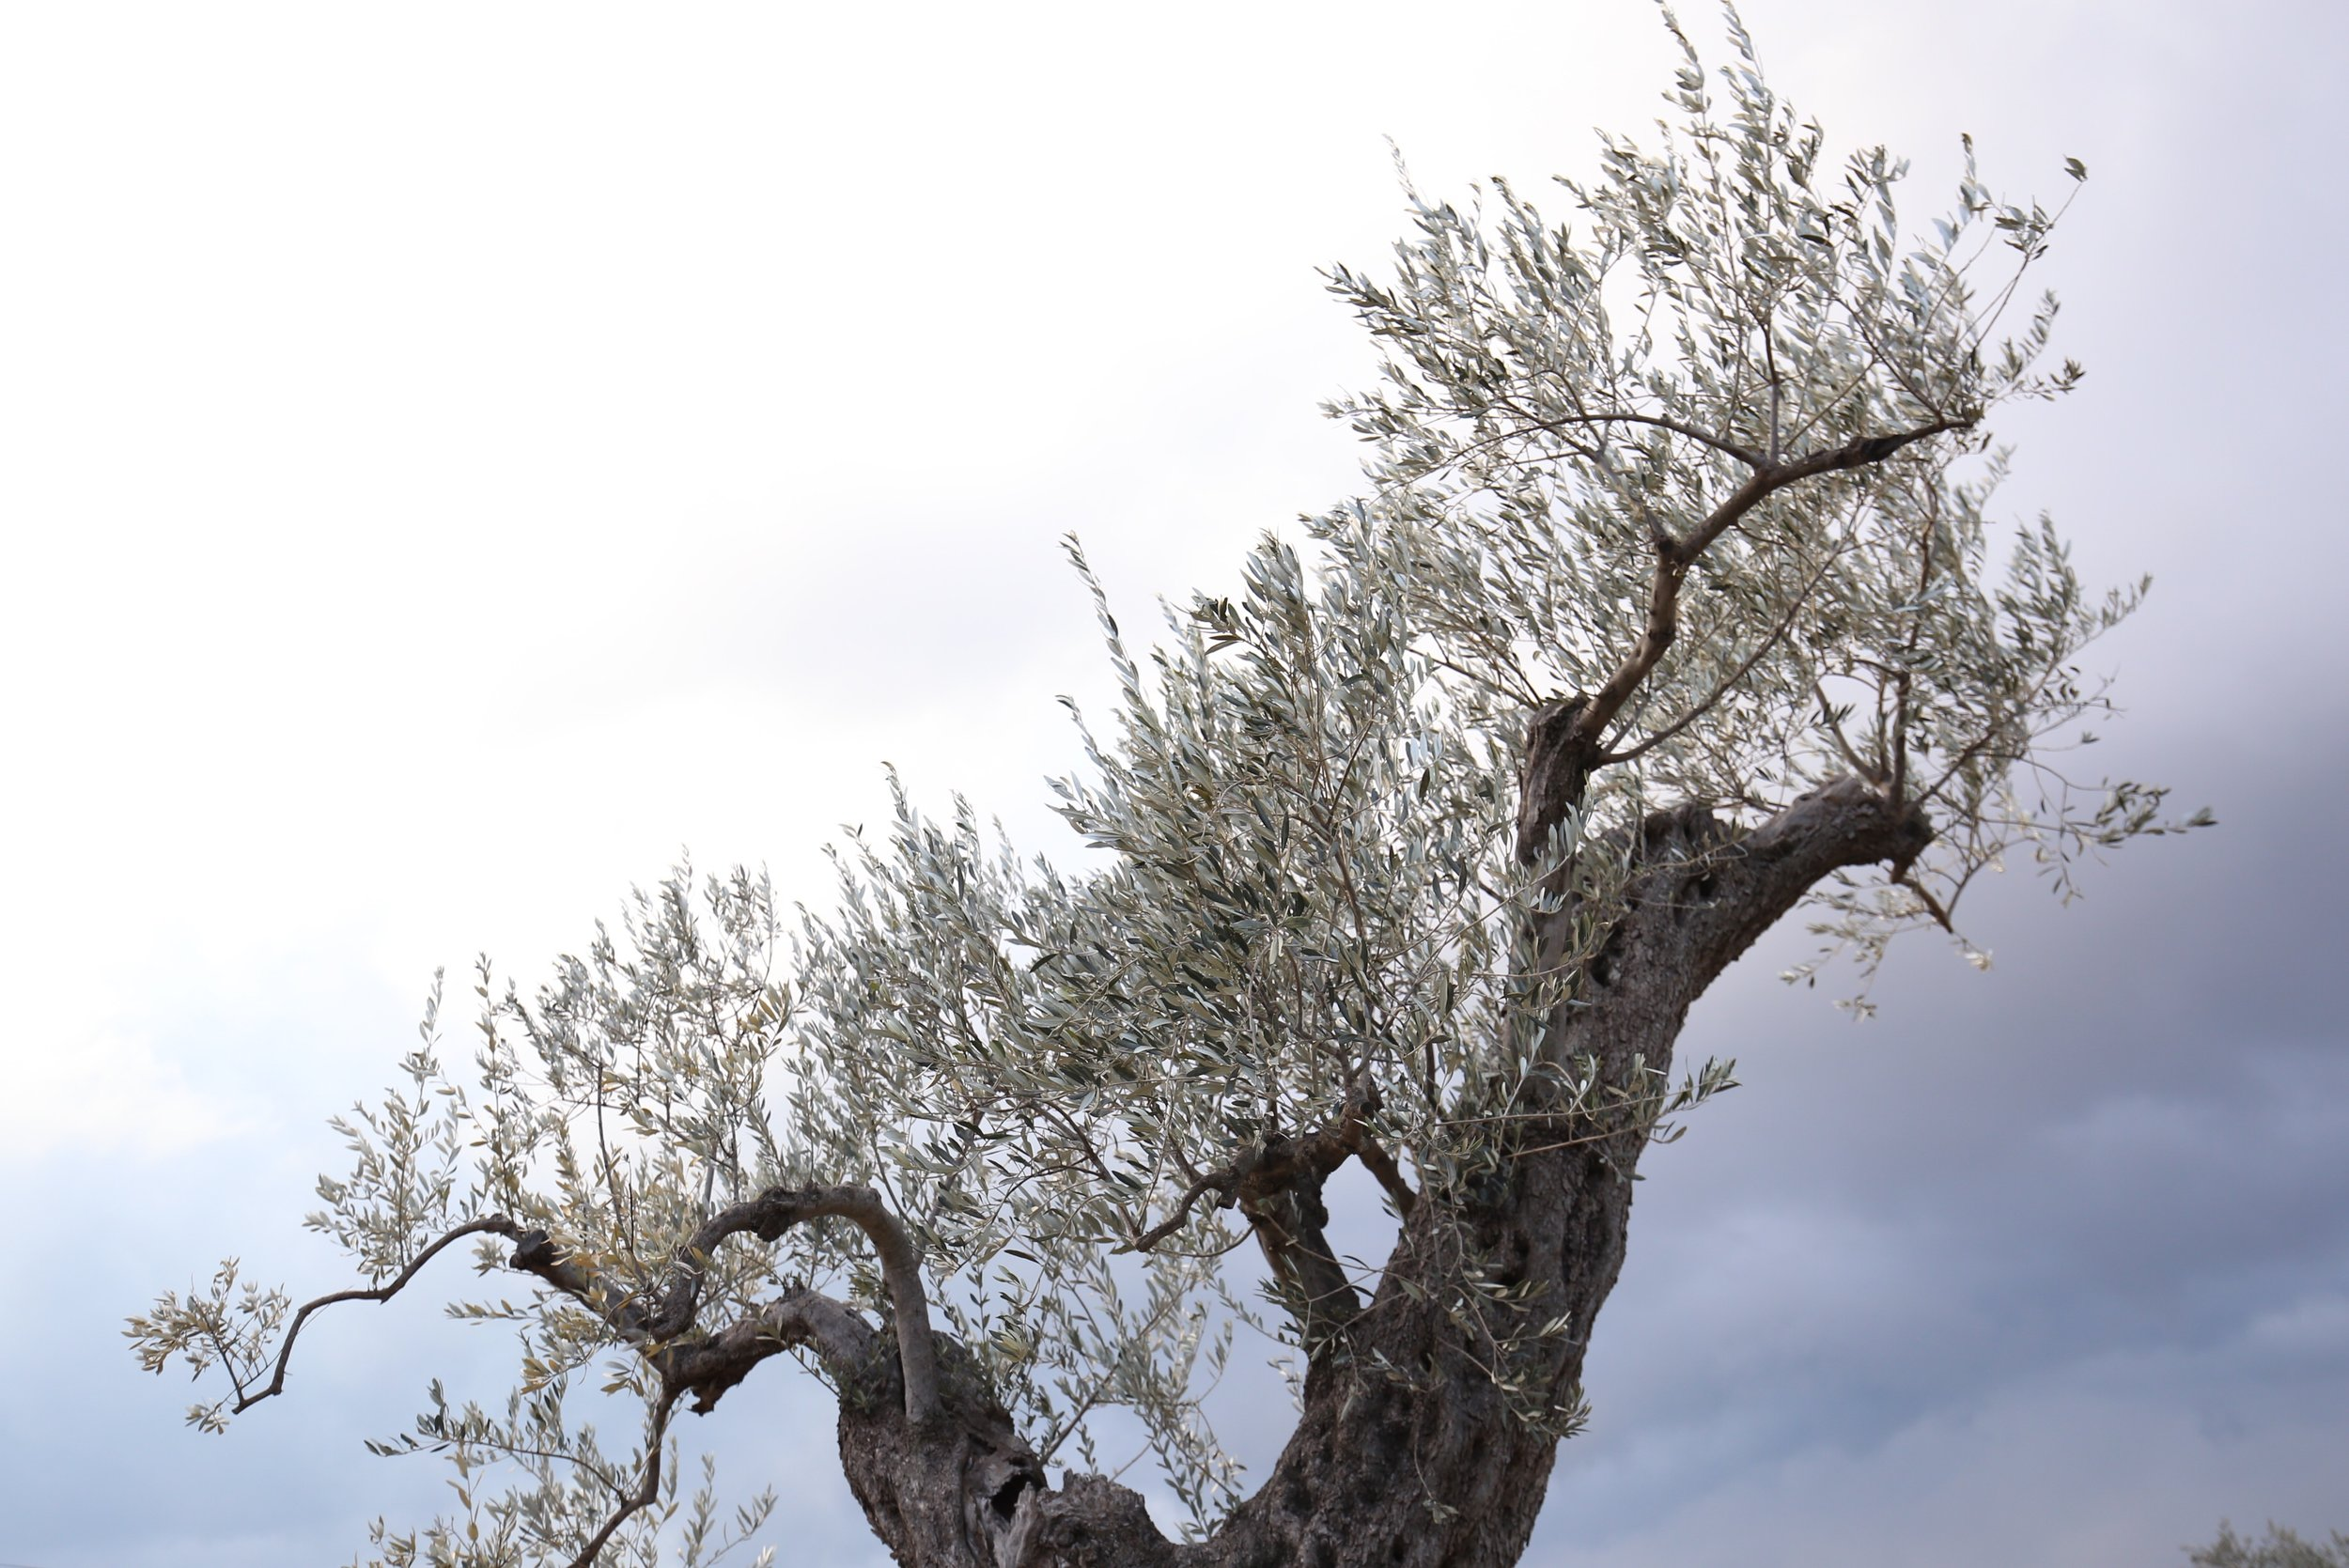 A twisted old olive branch reaches for the sky.